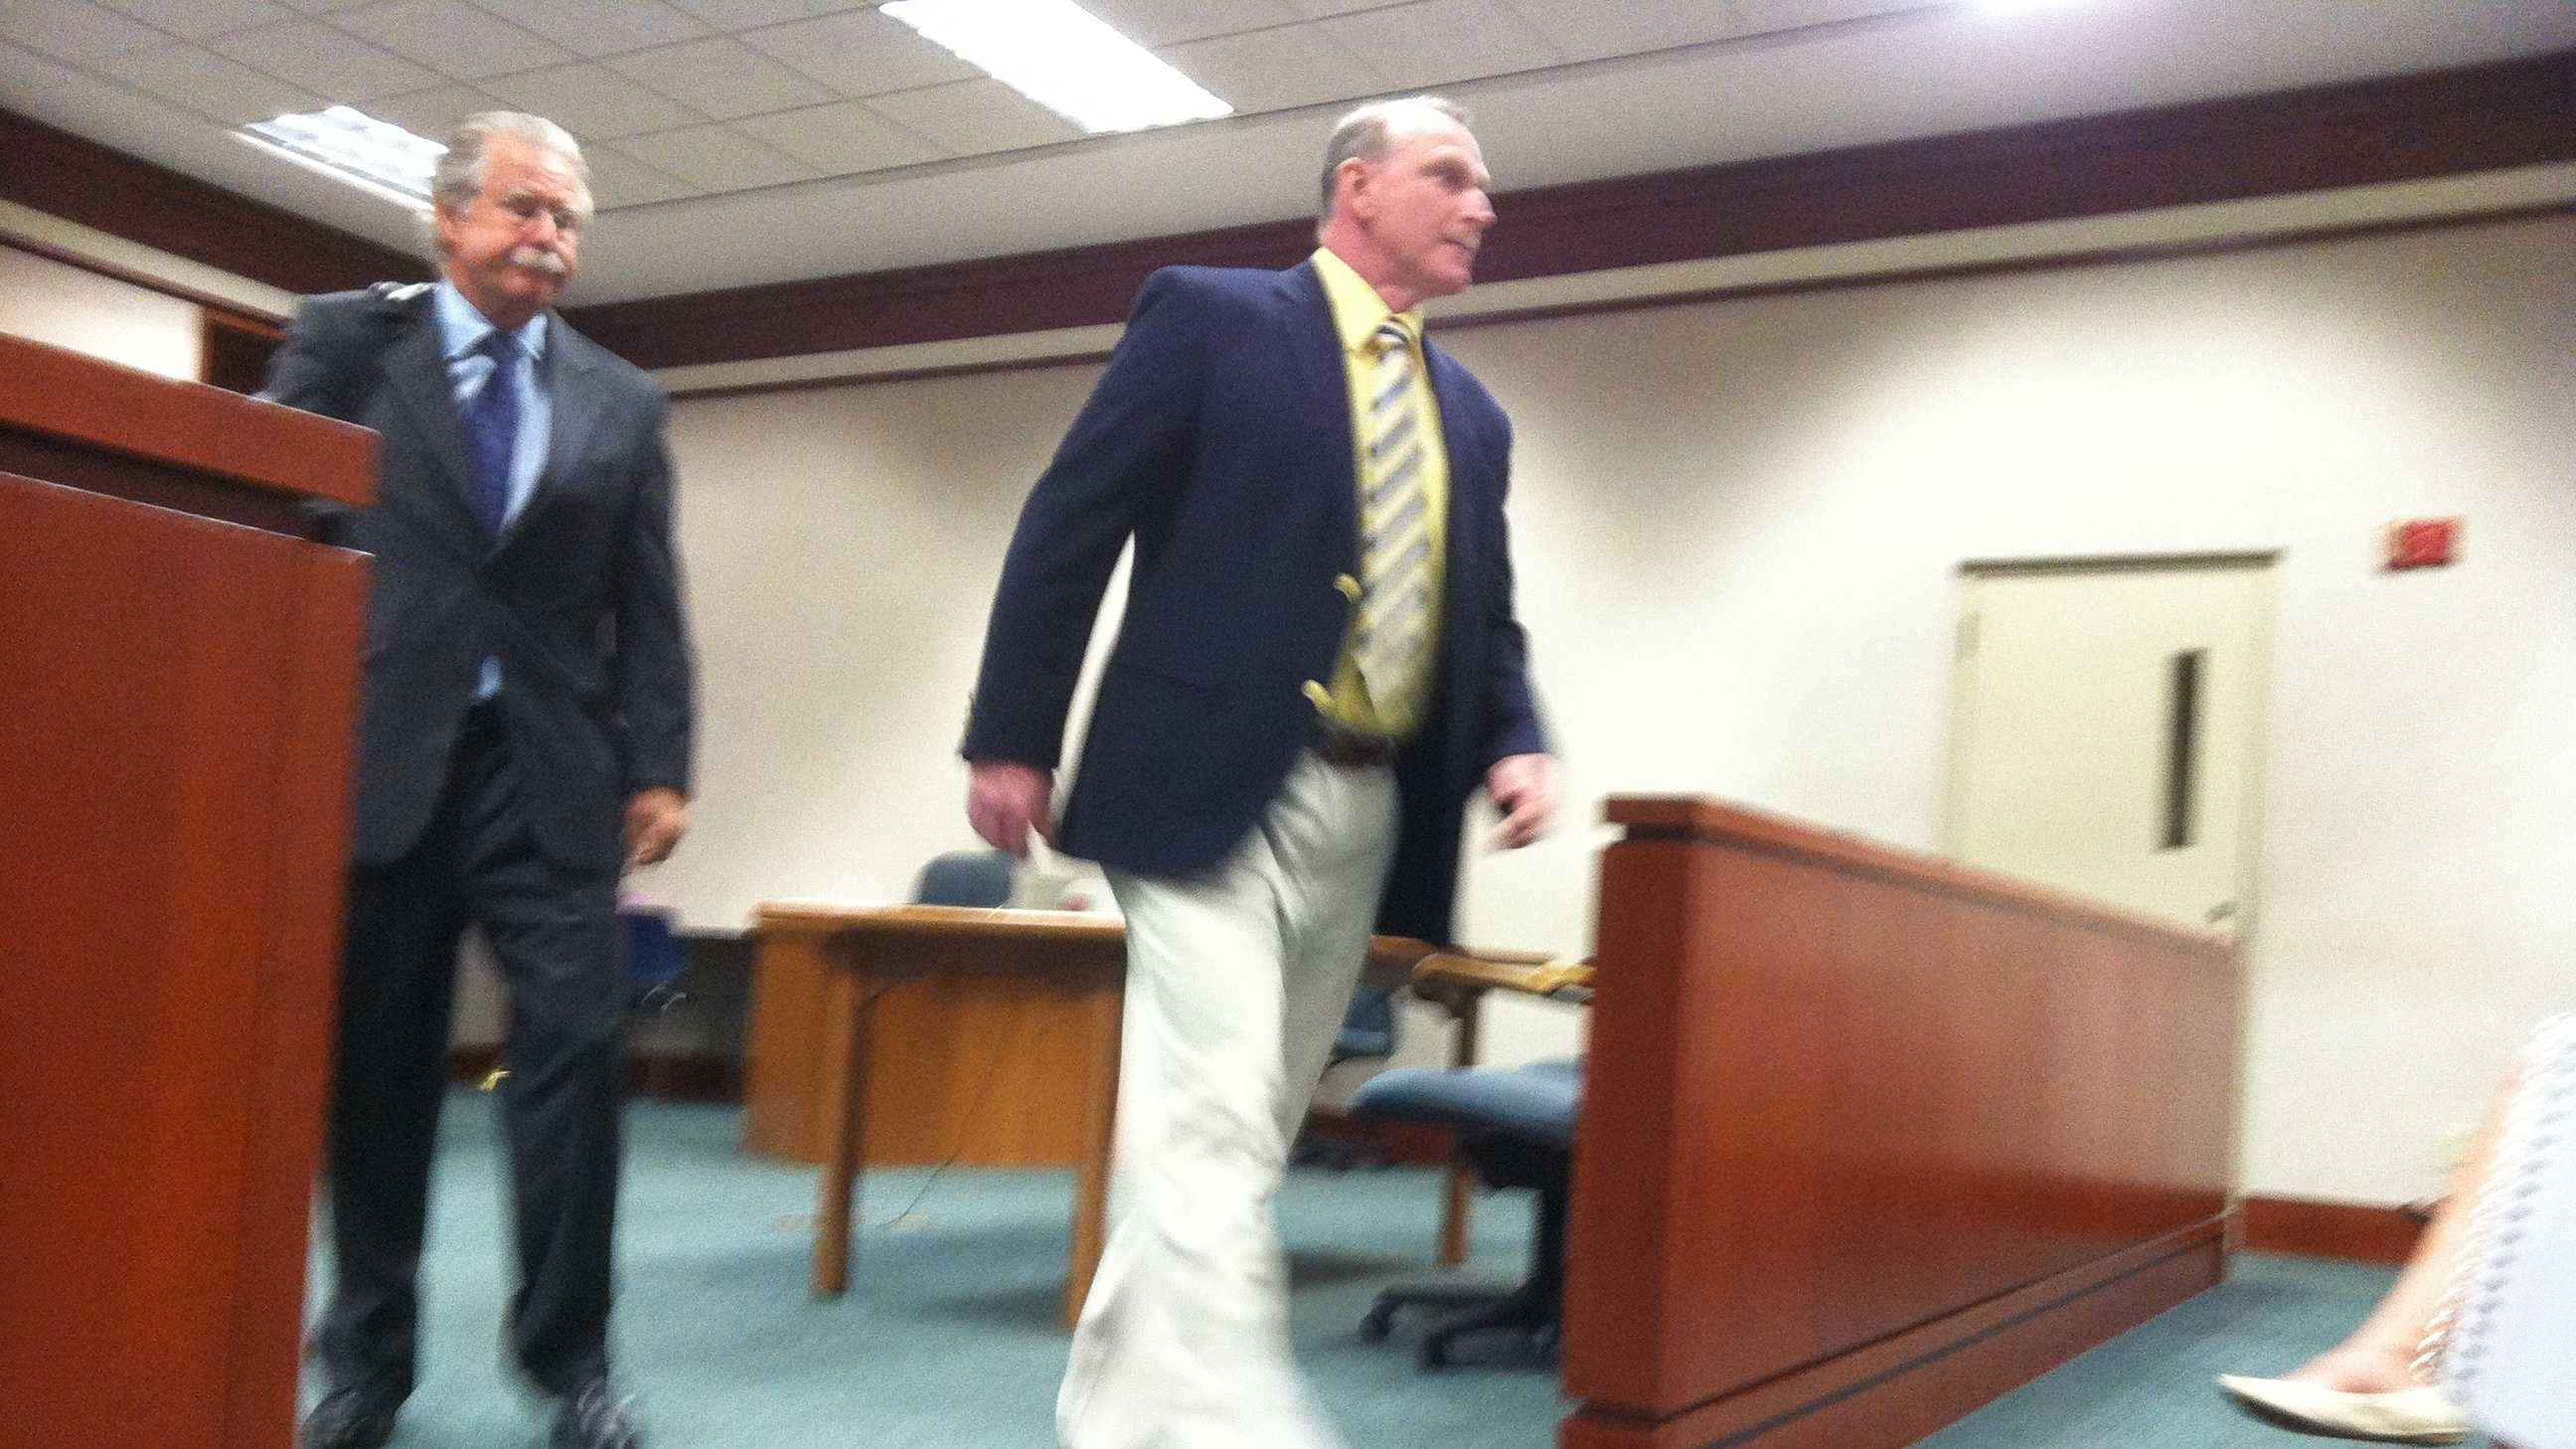 Jim Deeghan (R) with his lawyer after his arraignment